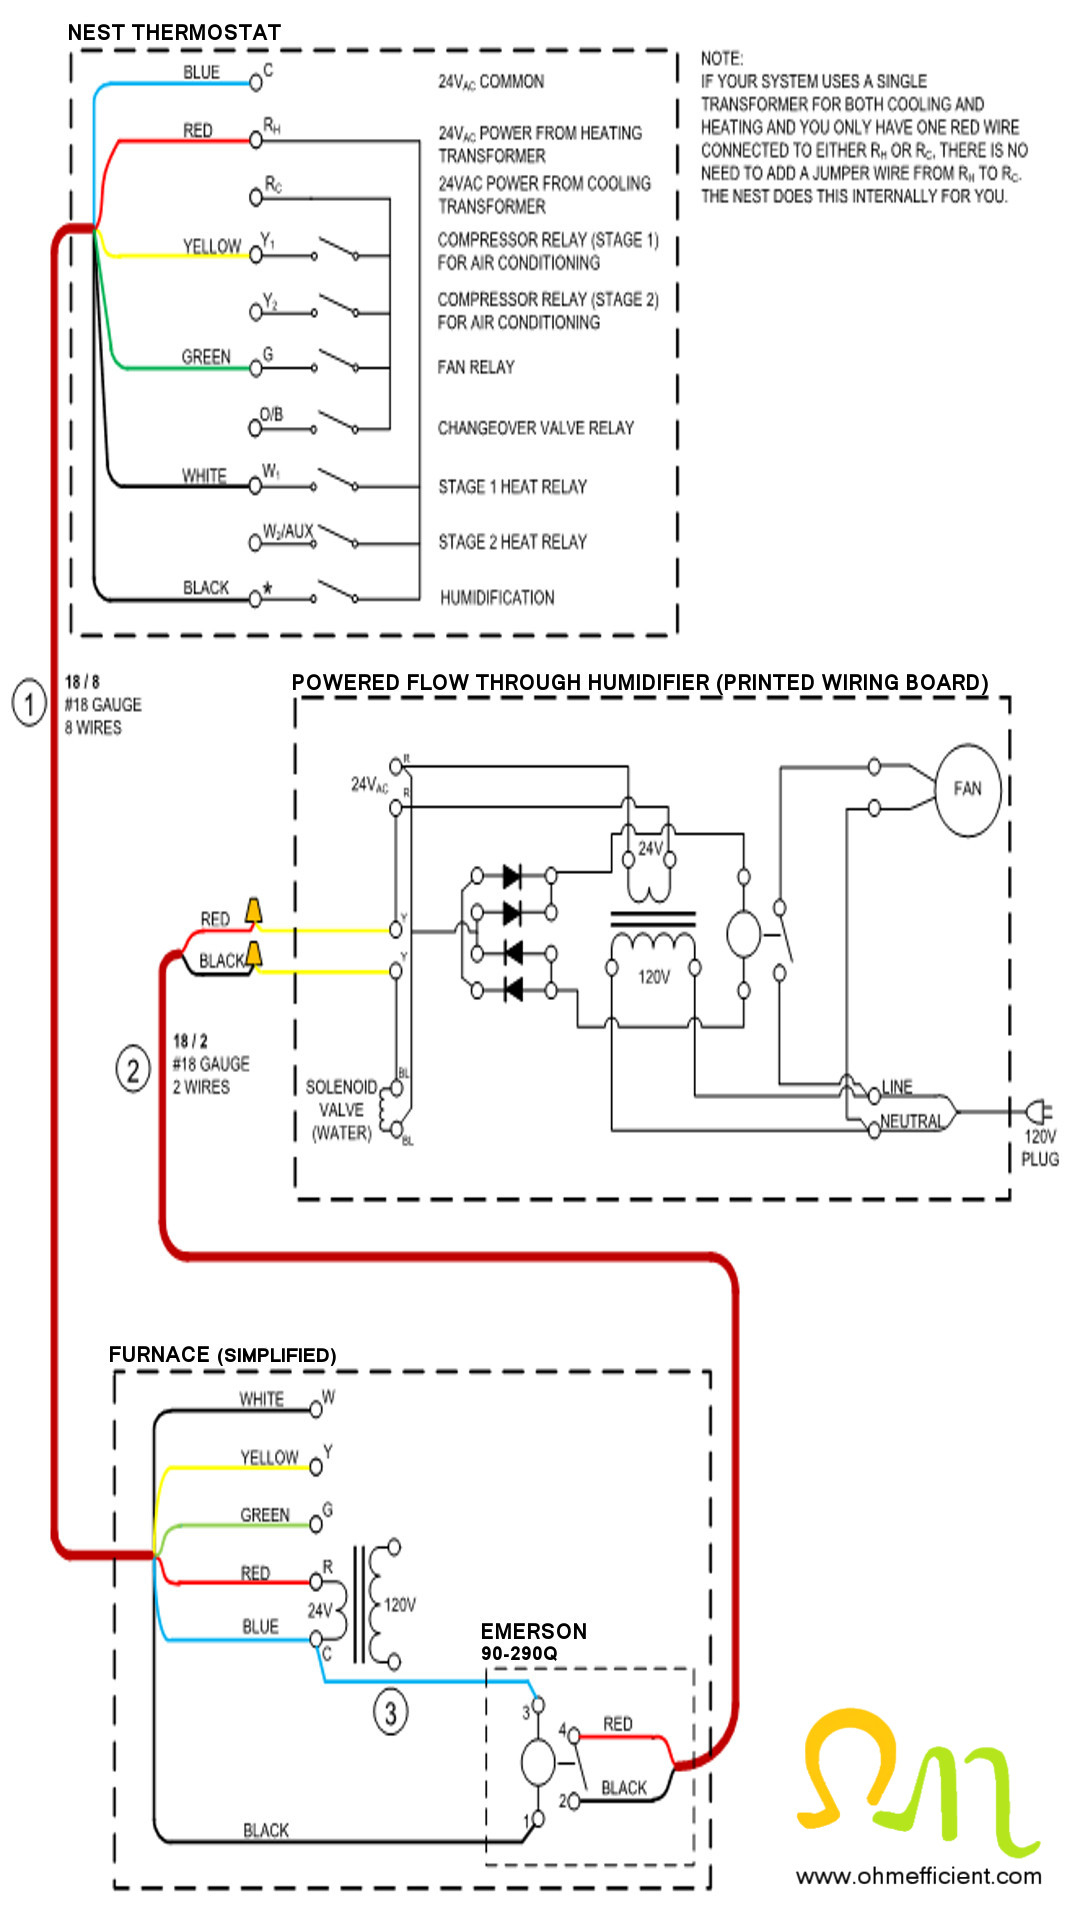 How To Connect & Setup A Nest Thermostat To Function As A Humidistat - The Nest Thermostat Wiring Diagram